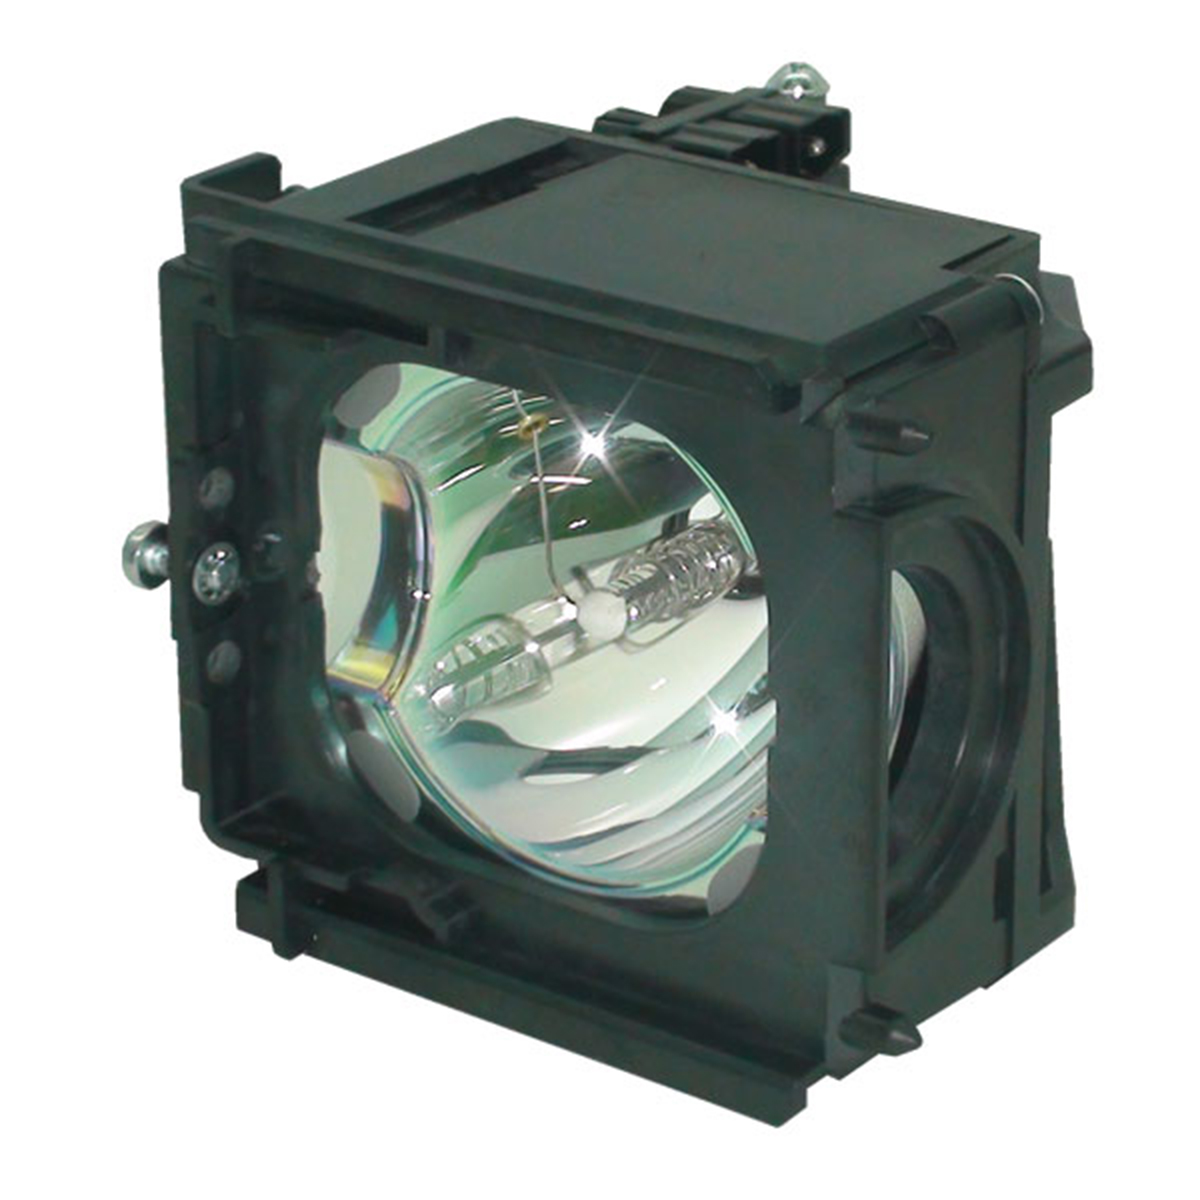 Viore BP96-01472A TV Lamp